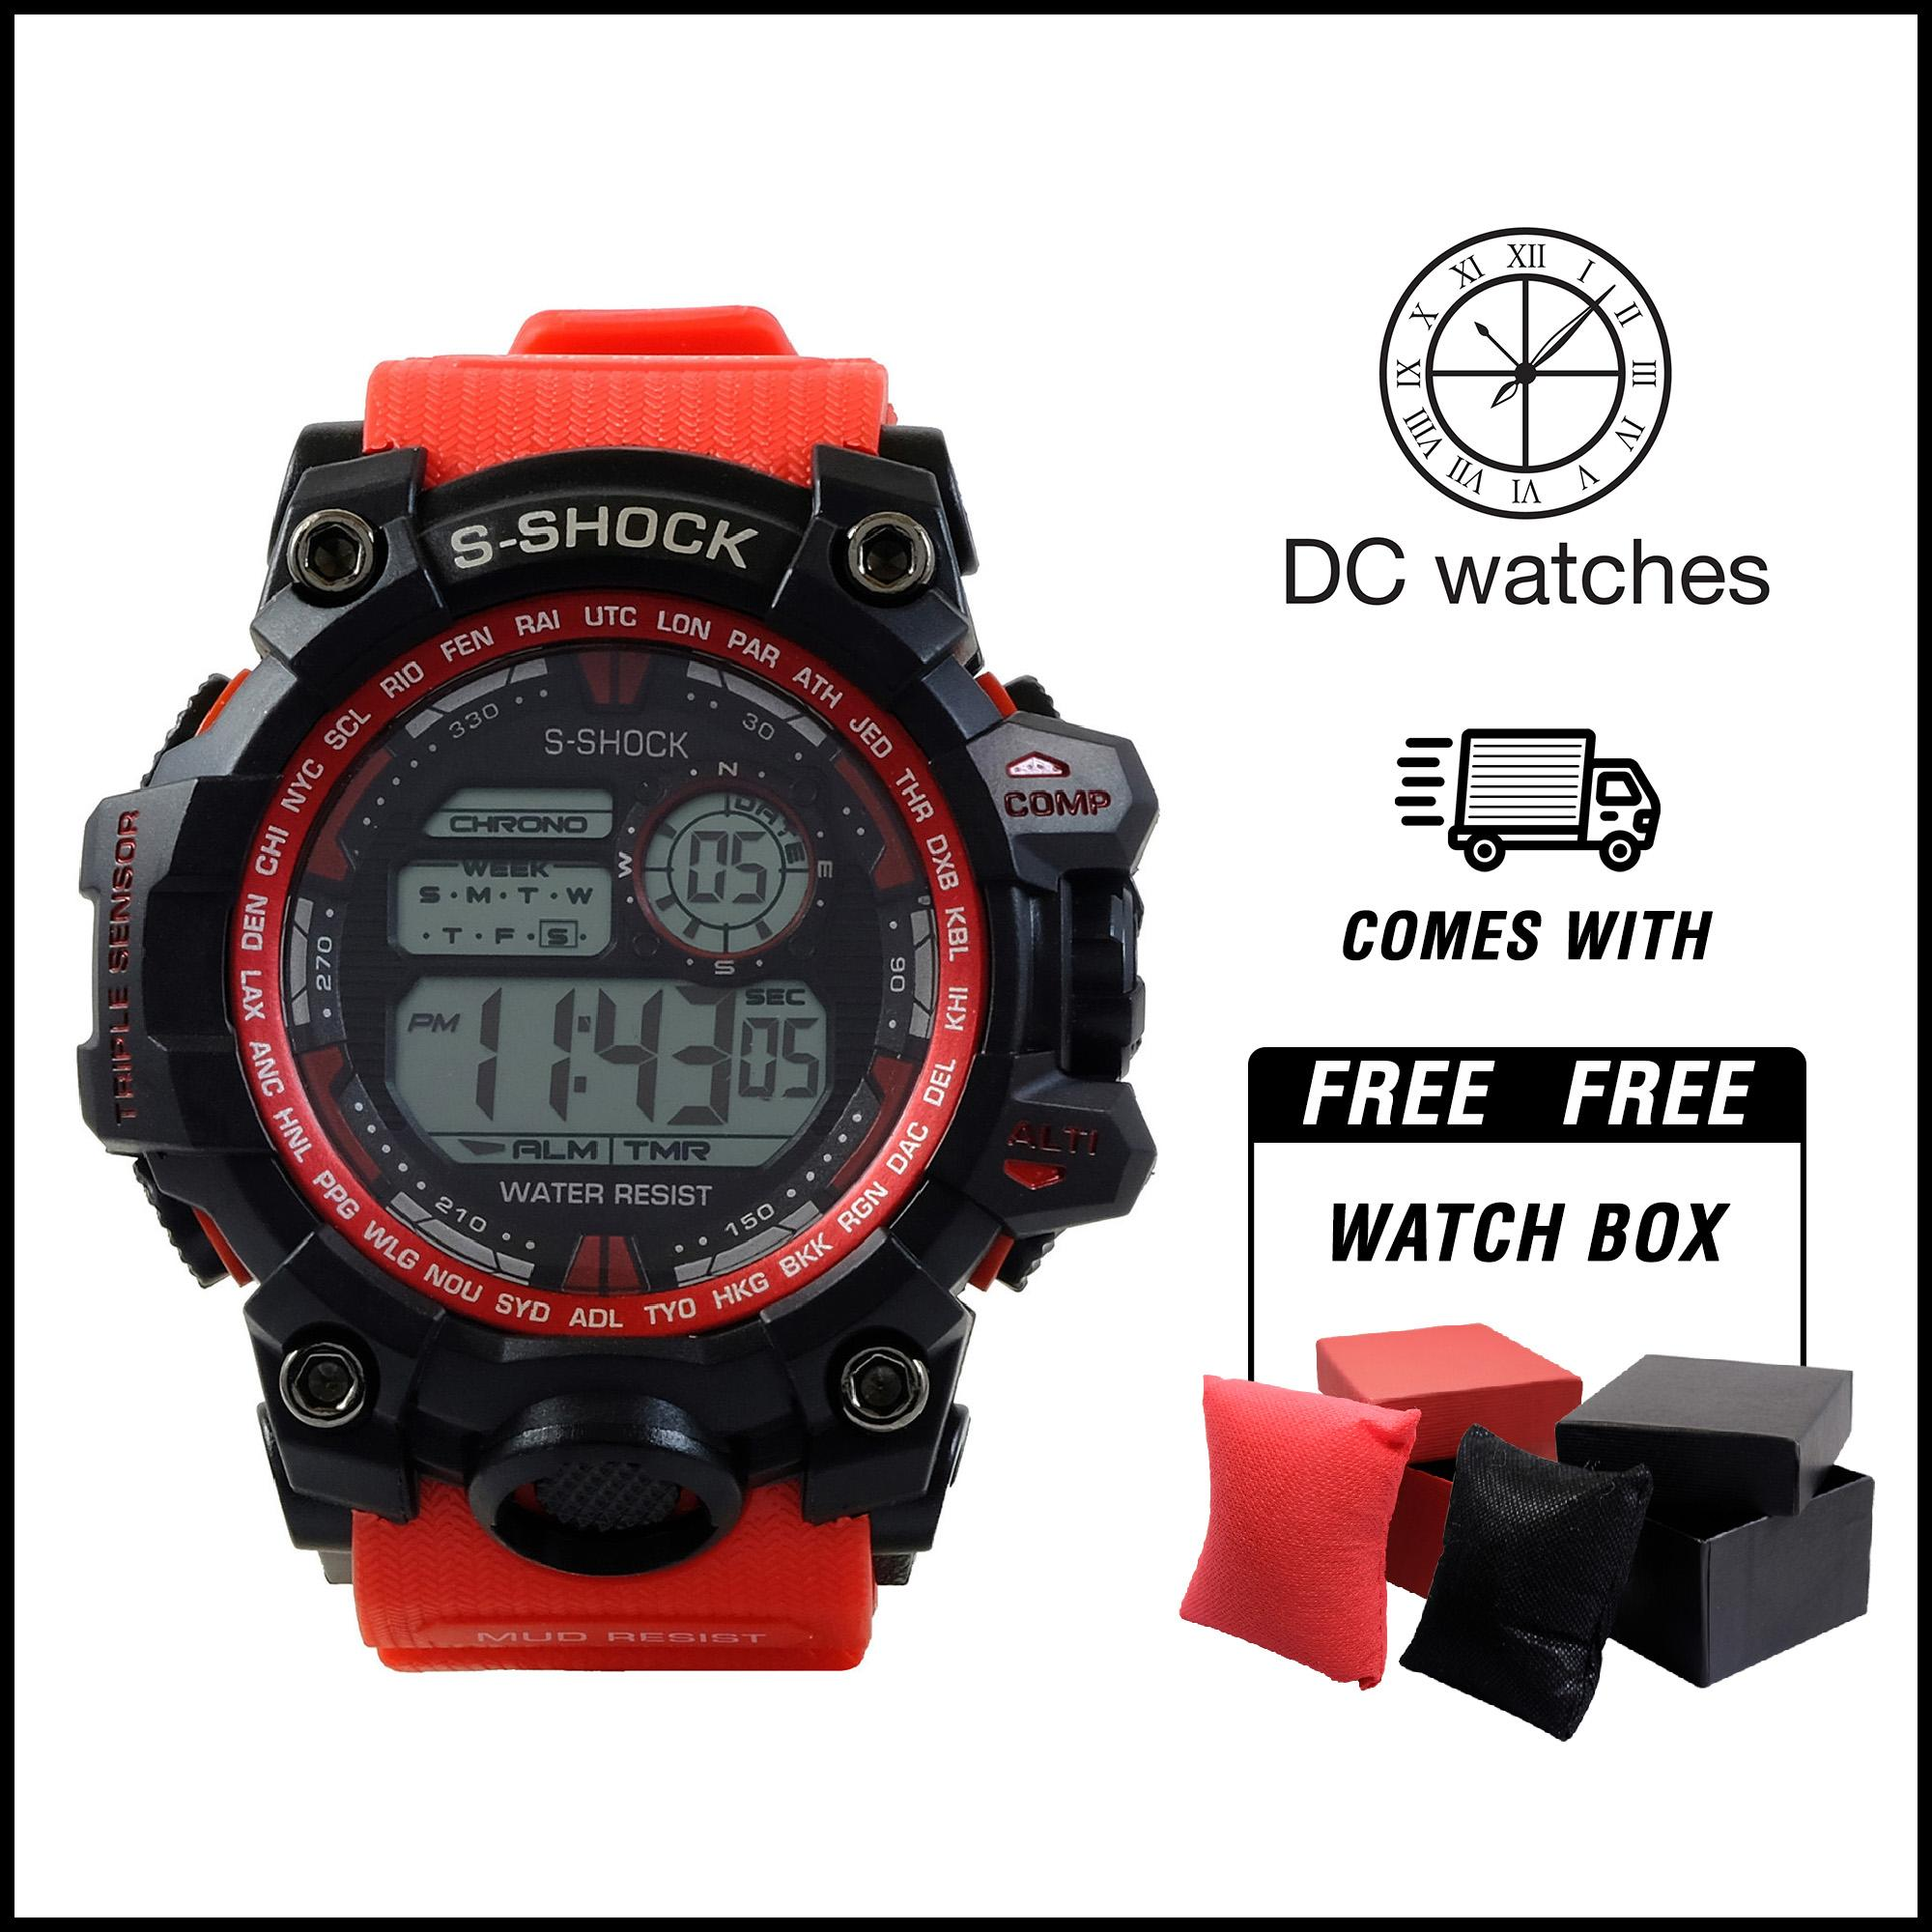 c62f17e5830 DC Watches S-shock World Time 9977 WATERPROOF watch for men watch for women  watches